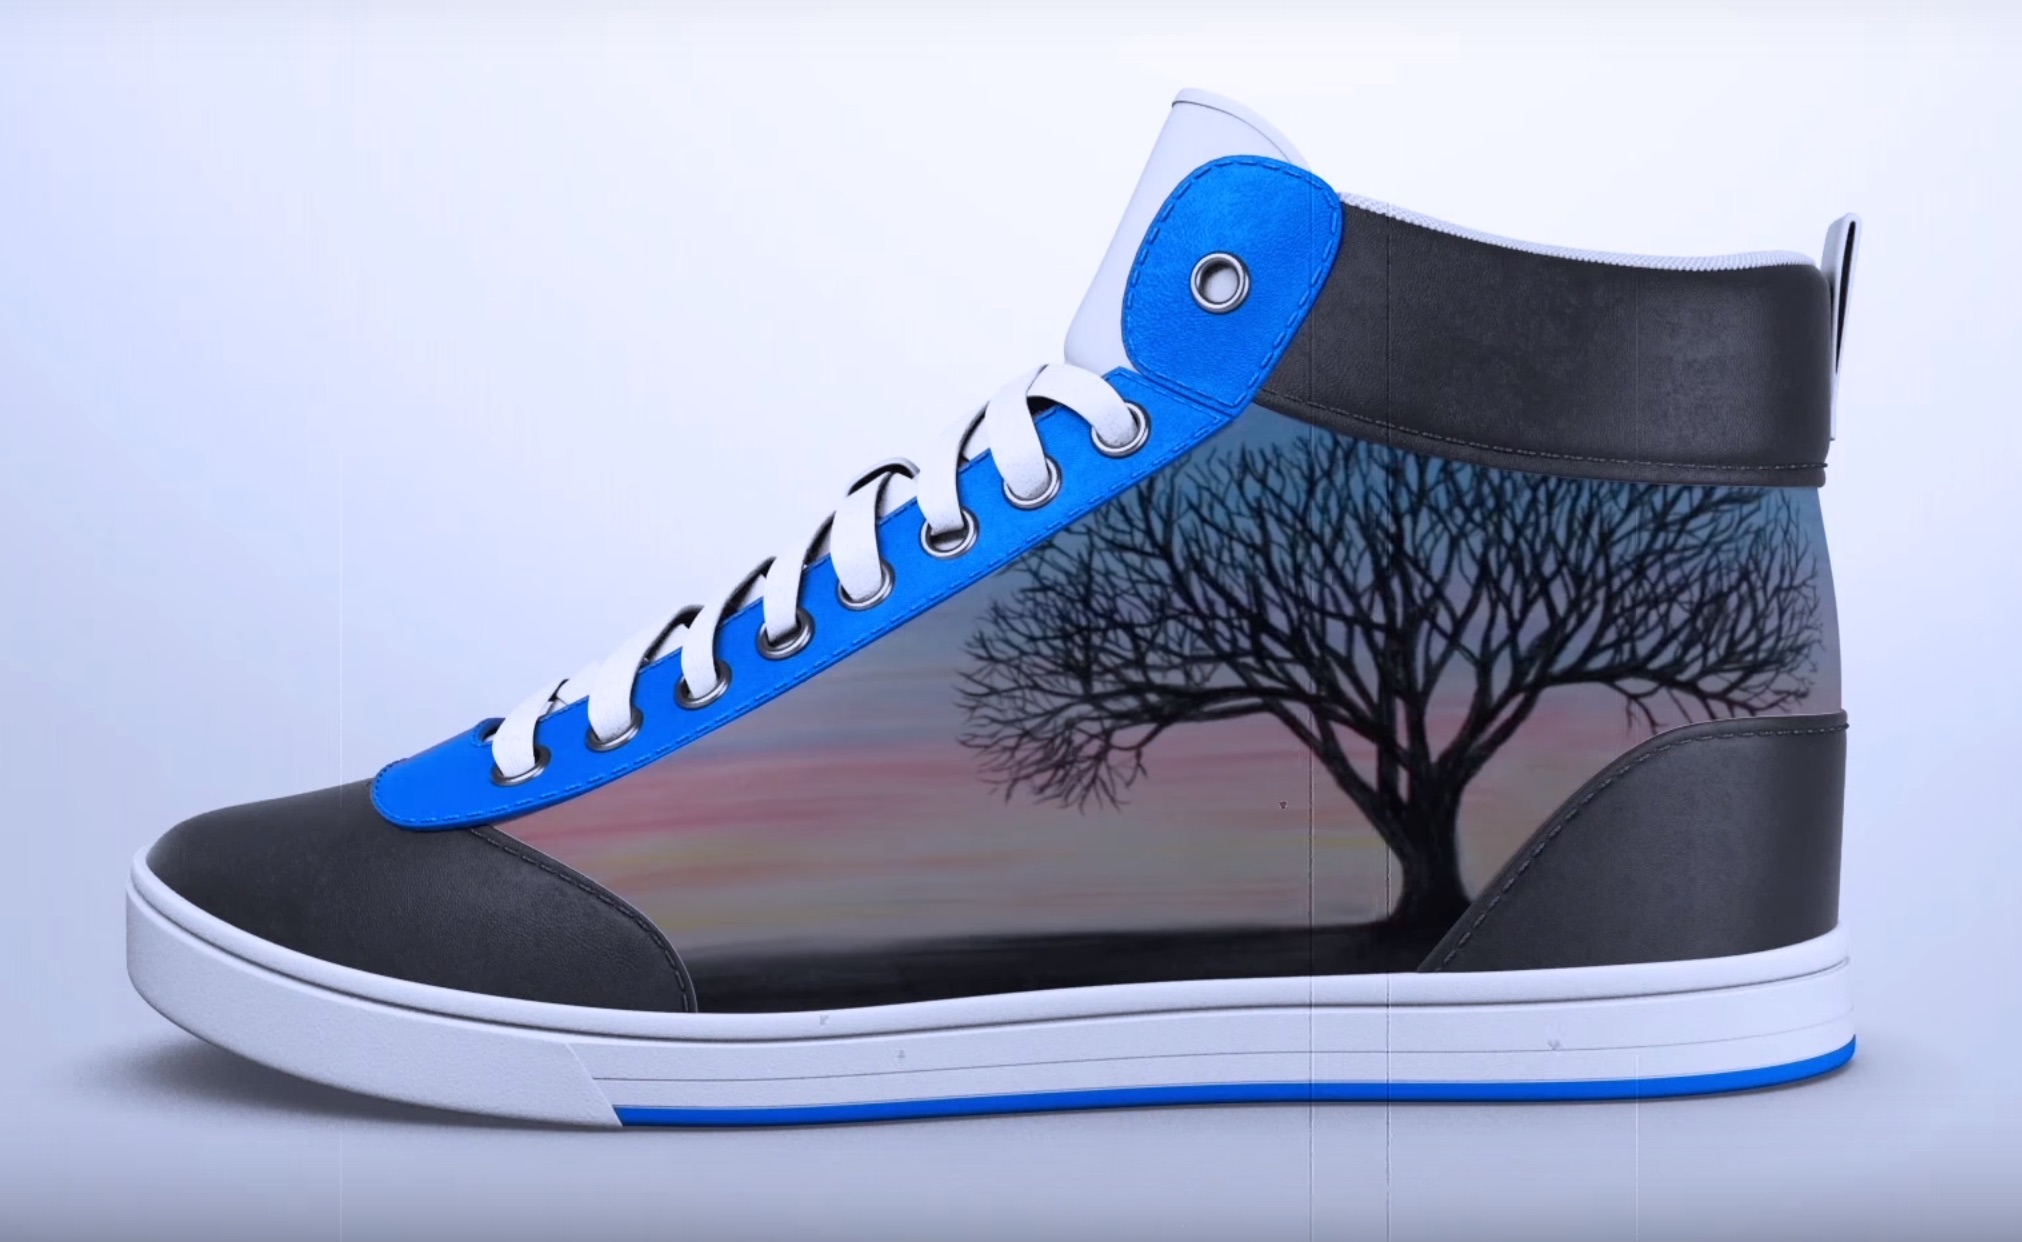 These shoes change color like magic with just one tap of your phone